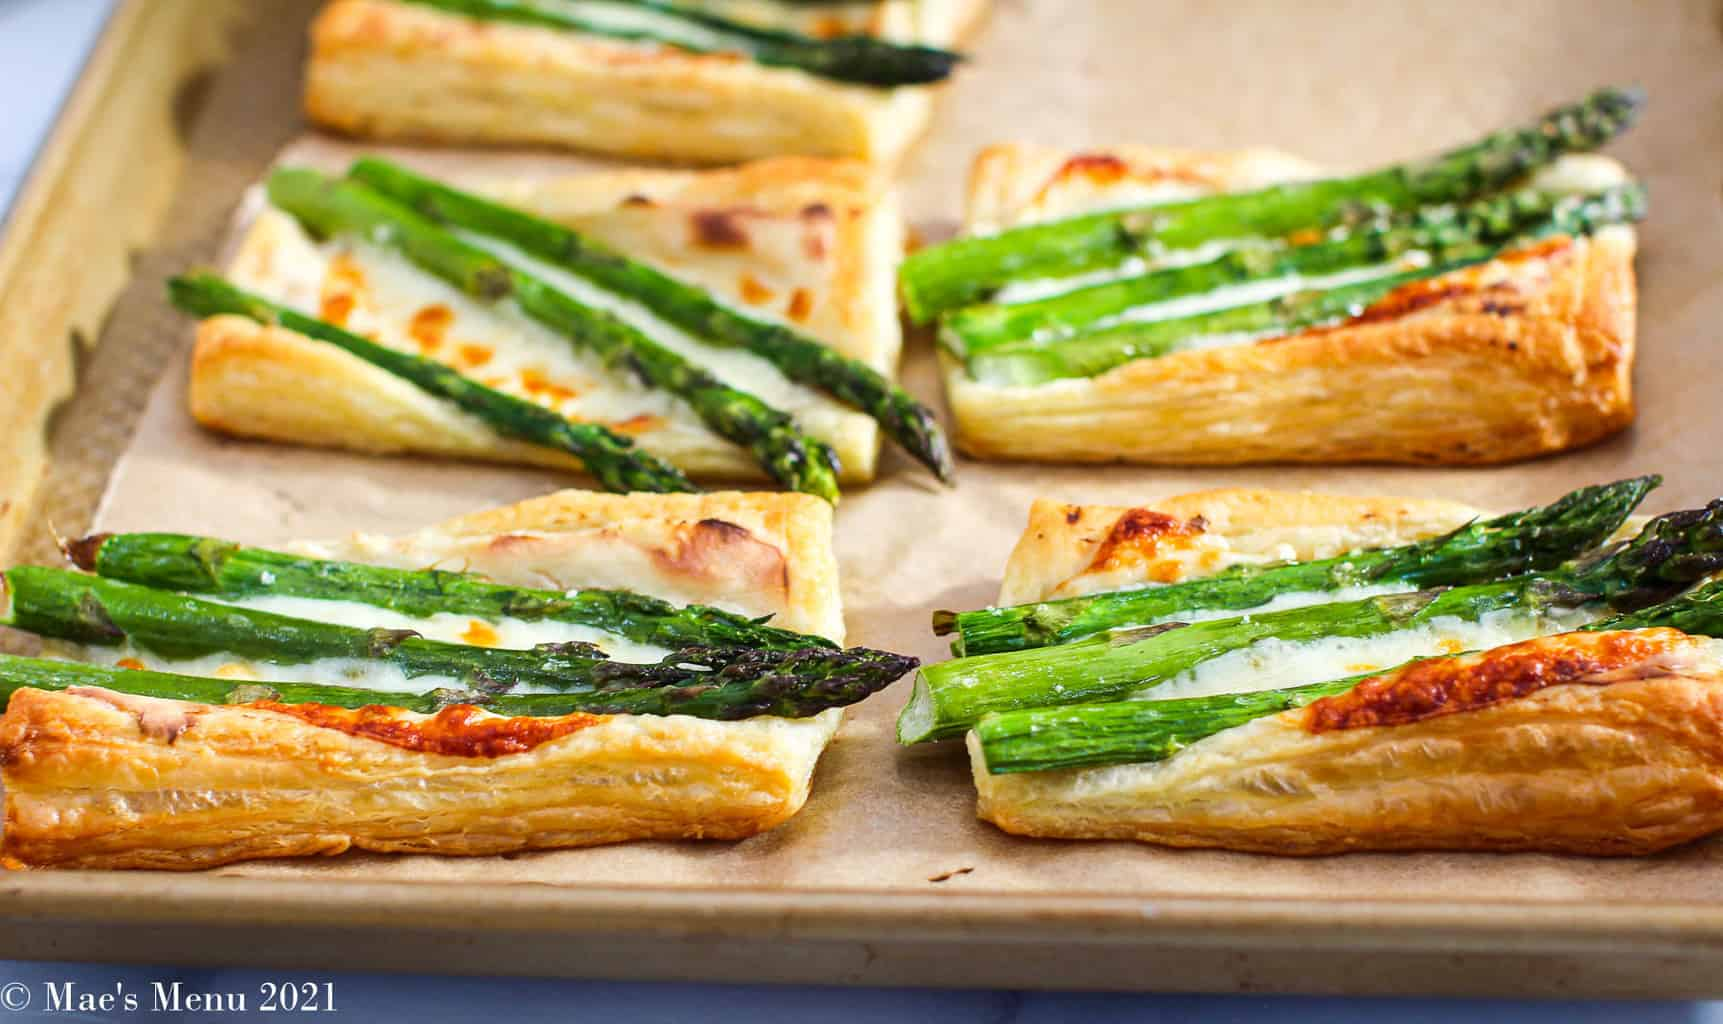 A side shot of a tray of asparagus tarts